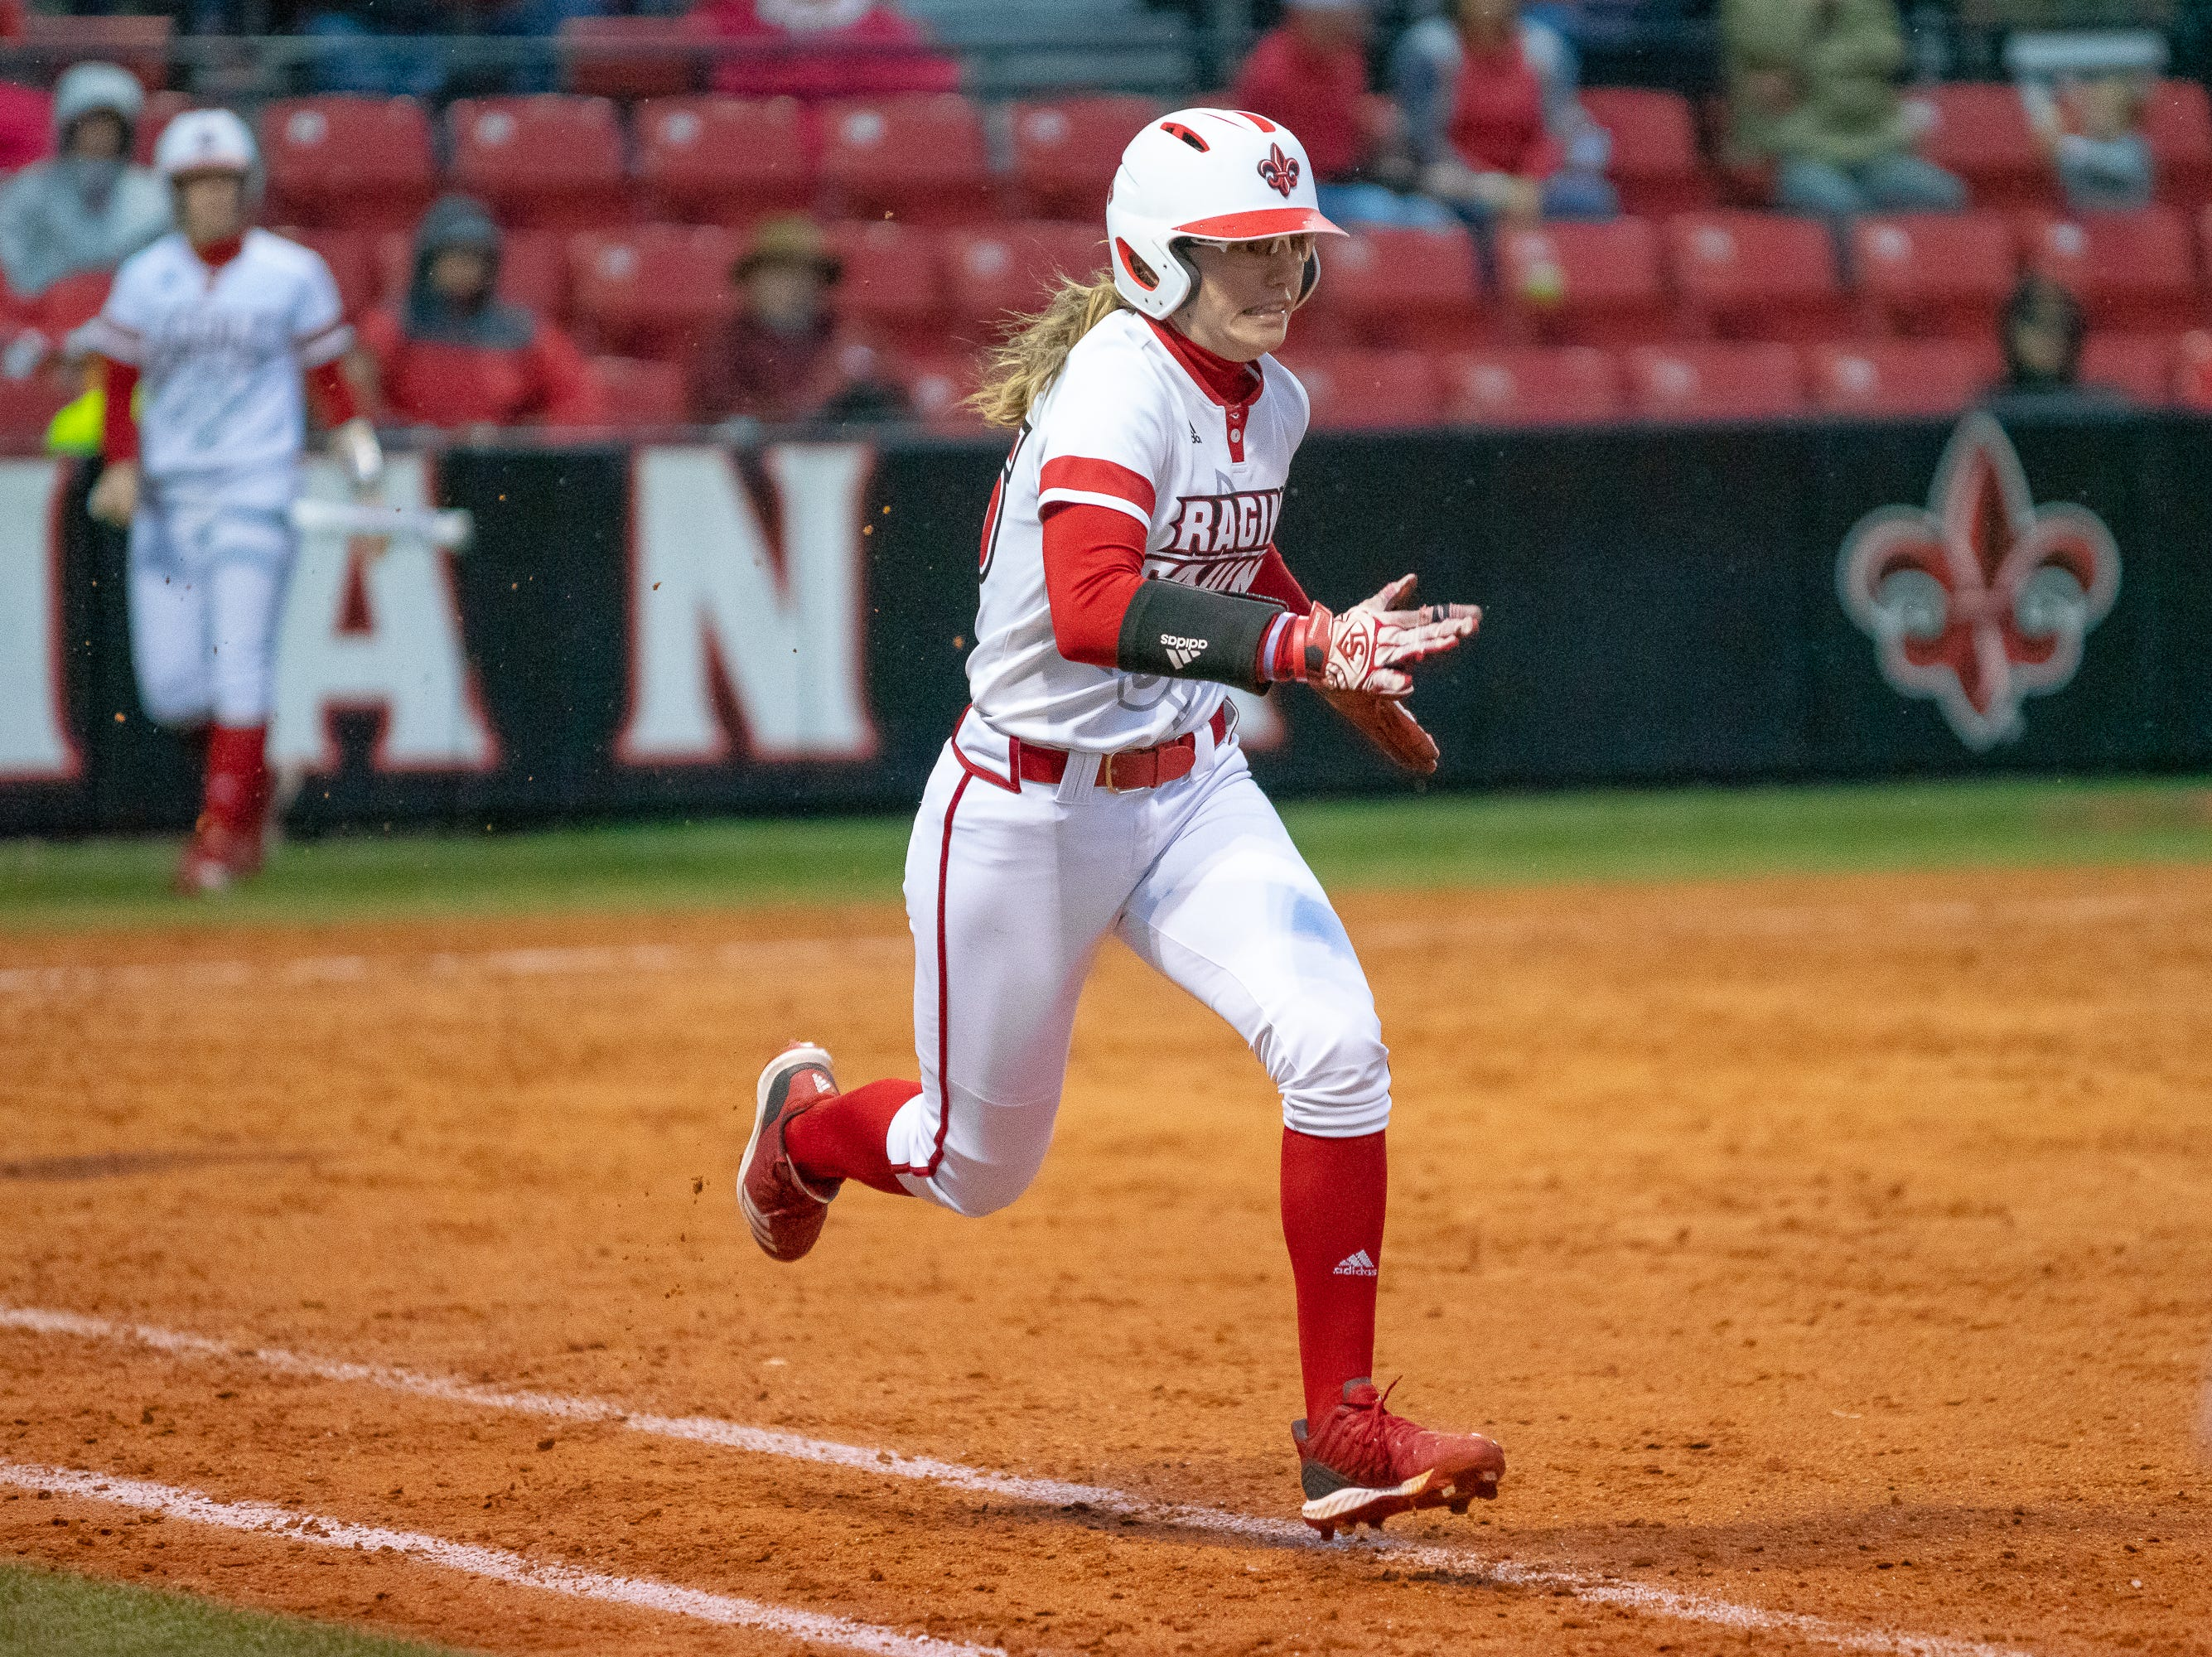 UL's Sarah Hudek runs to first base as the Ragin' Cajuns take on the Troy Trojans at Lamson Park, Yvette Girouard Field on Friday, March 15, 2019.